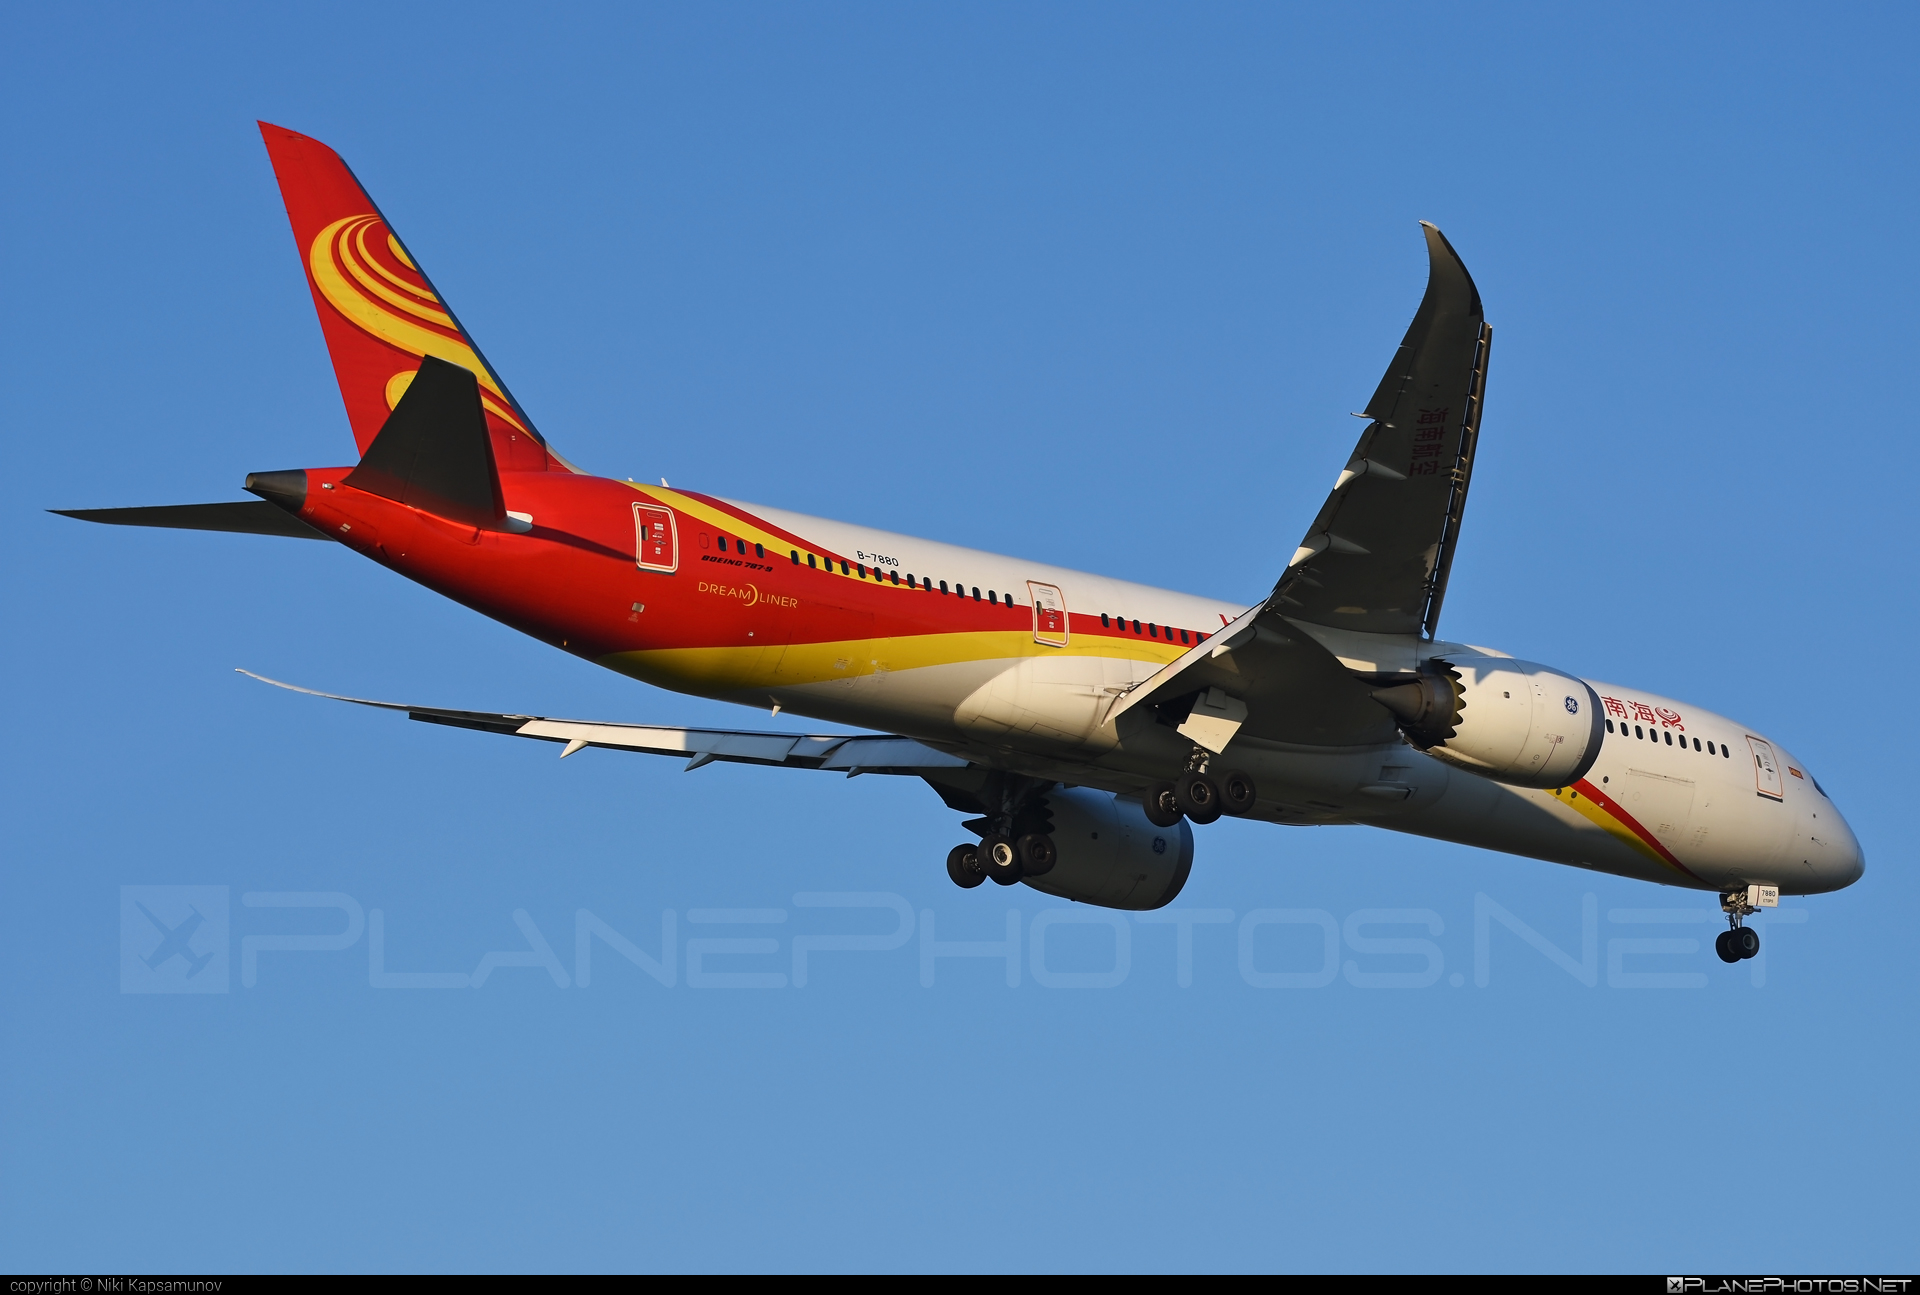 Boeing 787-9 Dreamliner - B-7880 operated by Hainan Airlines #b787 #boeing #boeing787 #dreamliner